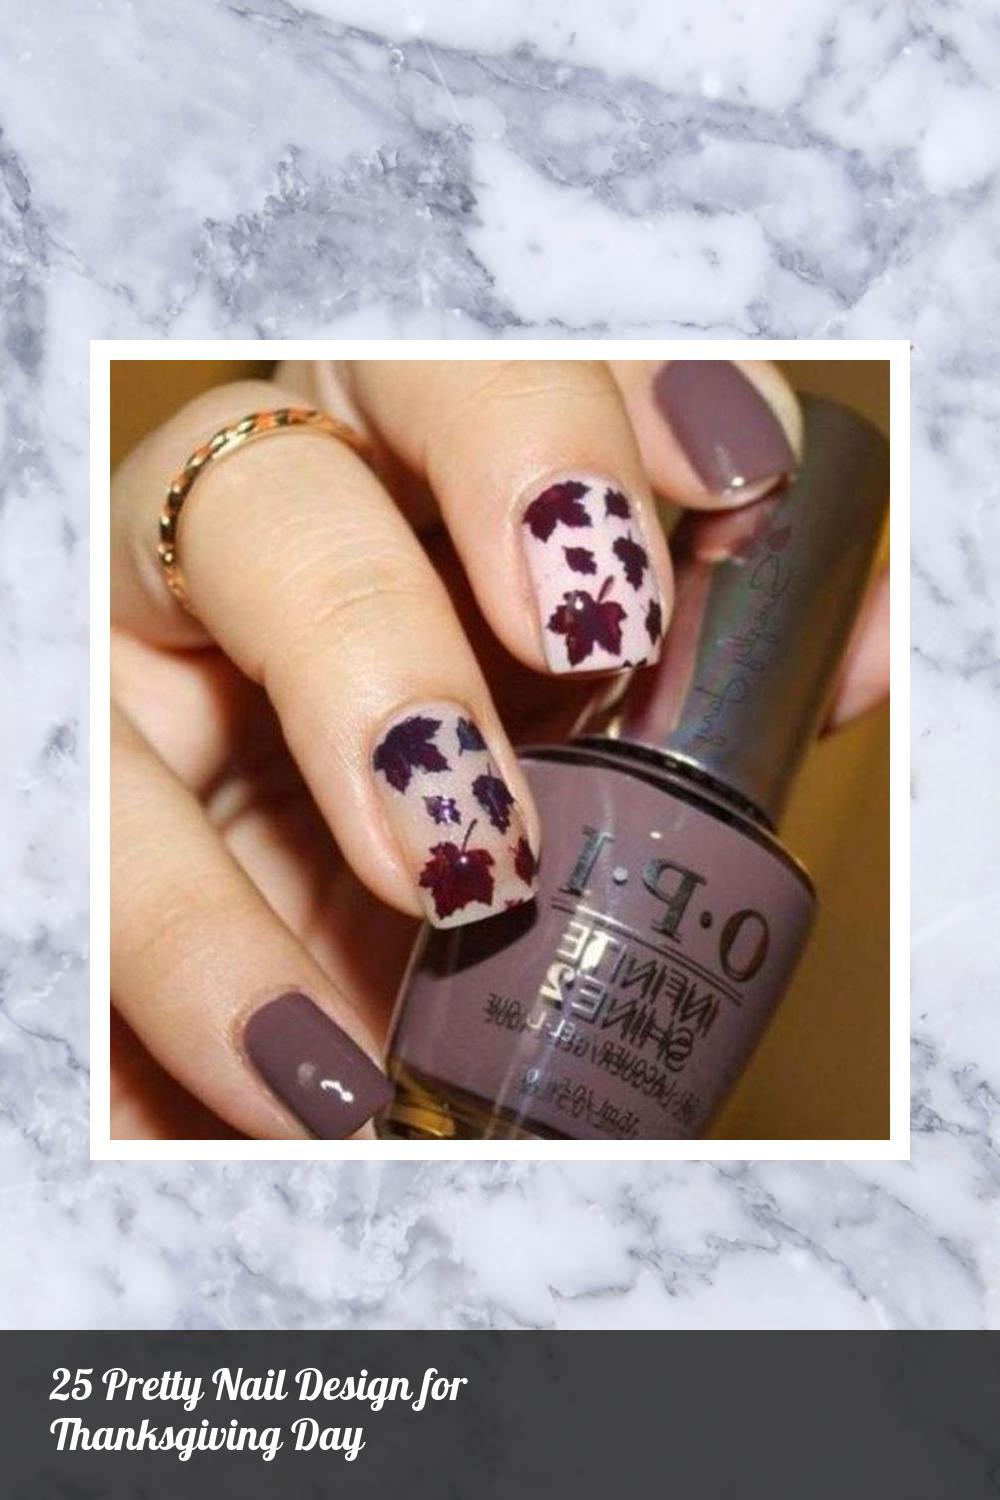 25 Pretty Nail Design for Thanksgiving Day 17